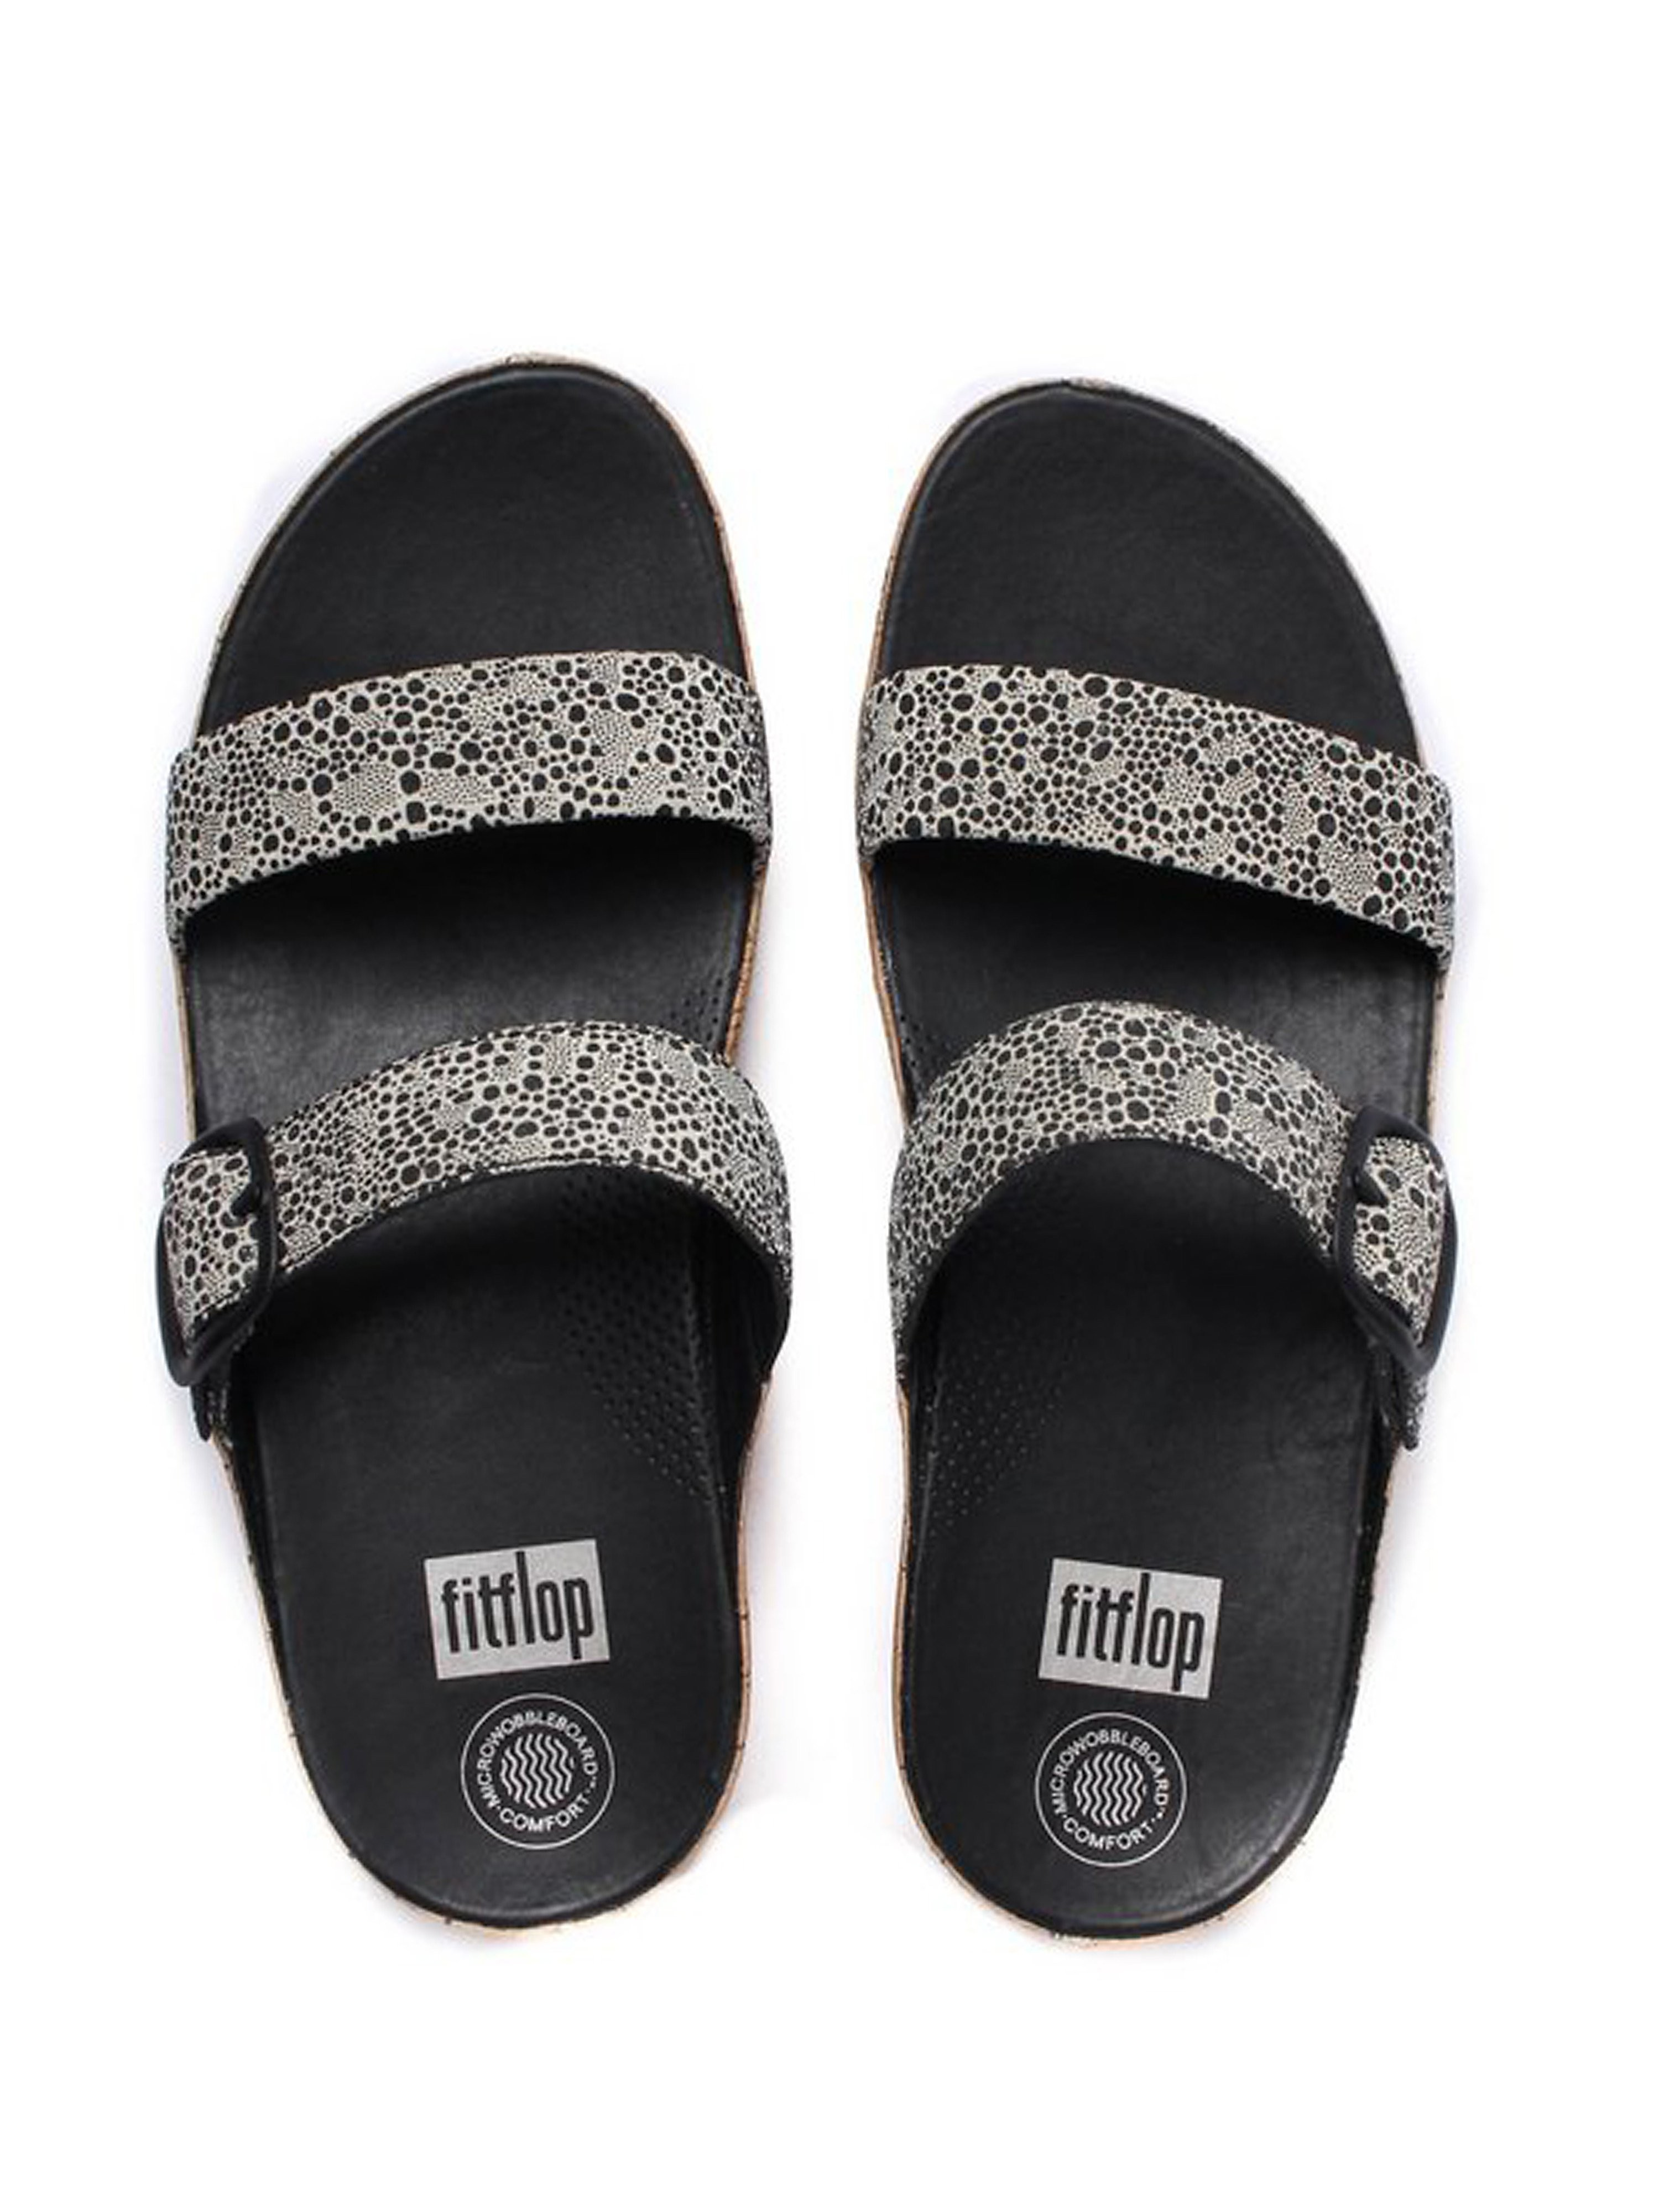 FitFlop Women's Stack Slide Cirque Sandals - Black & White